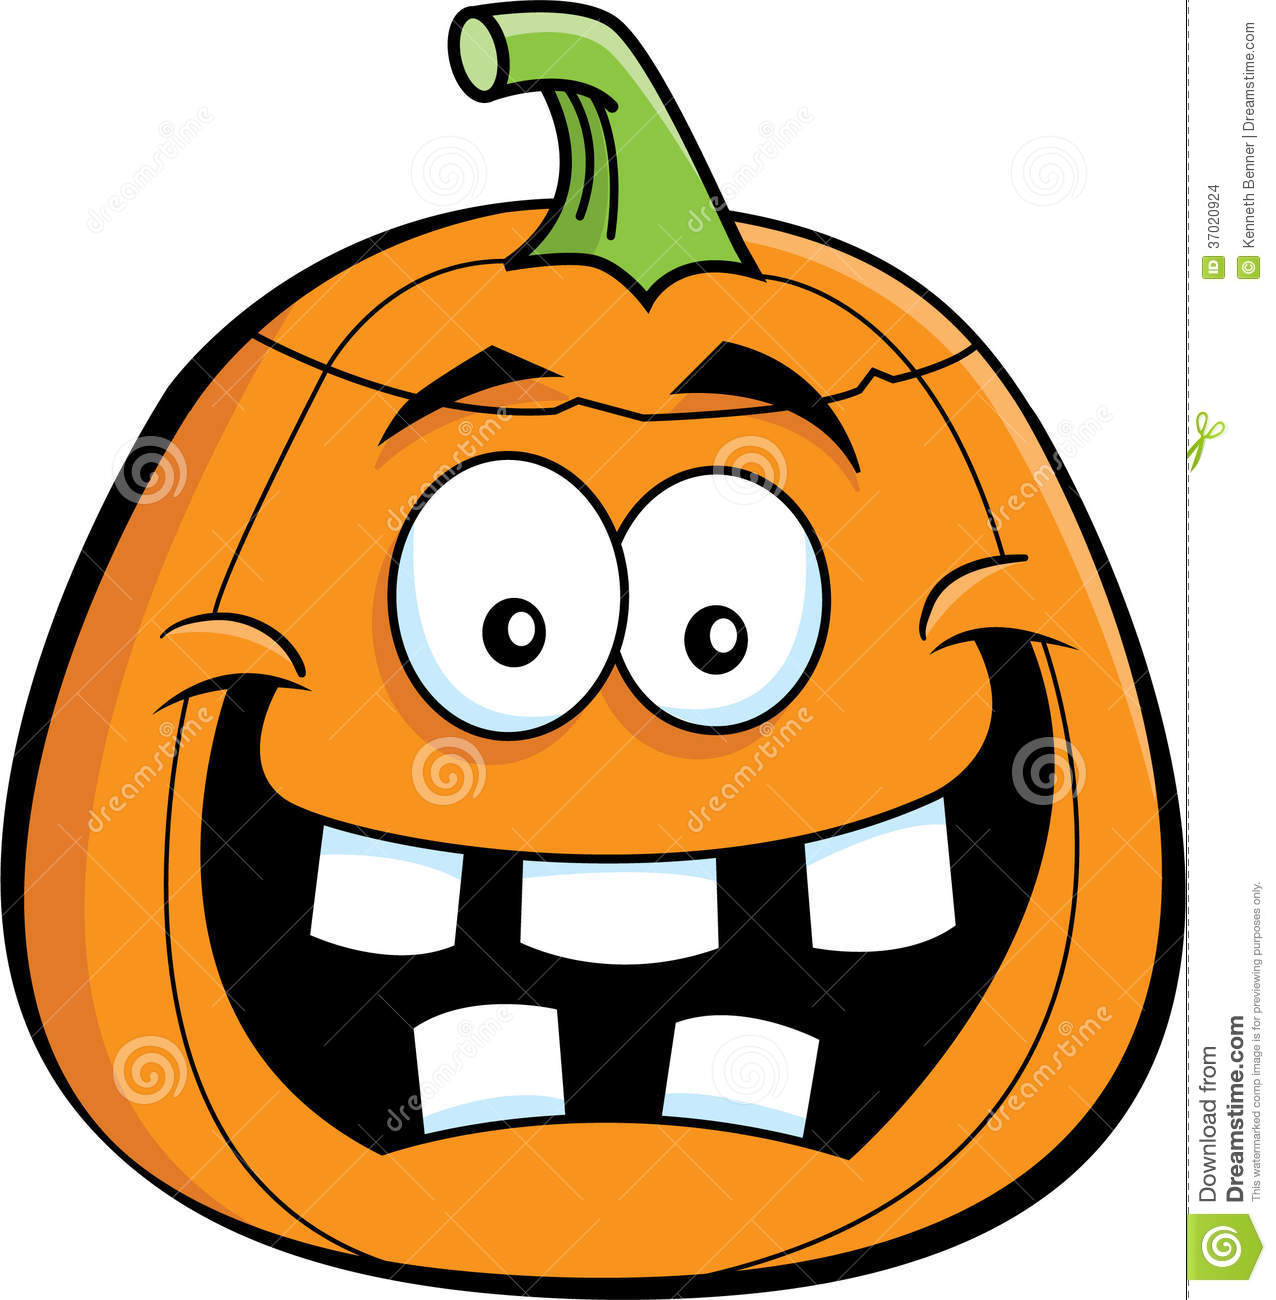 Cartoon illustration of a jack o' lantern Halloween pumpkin.